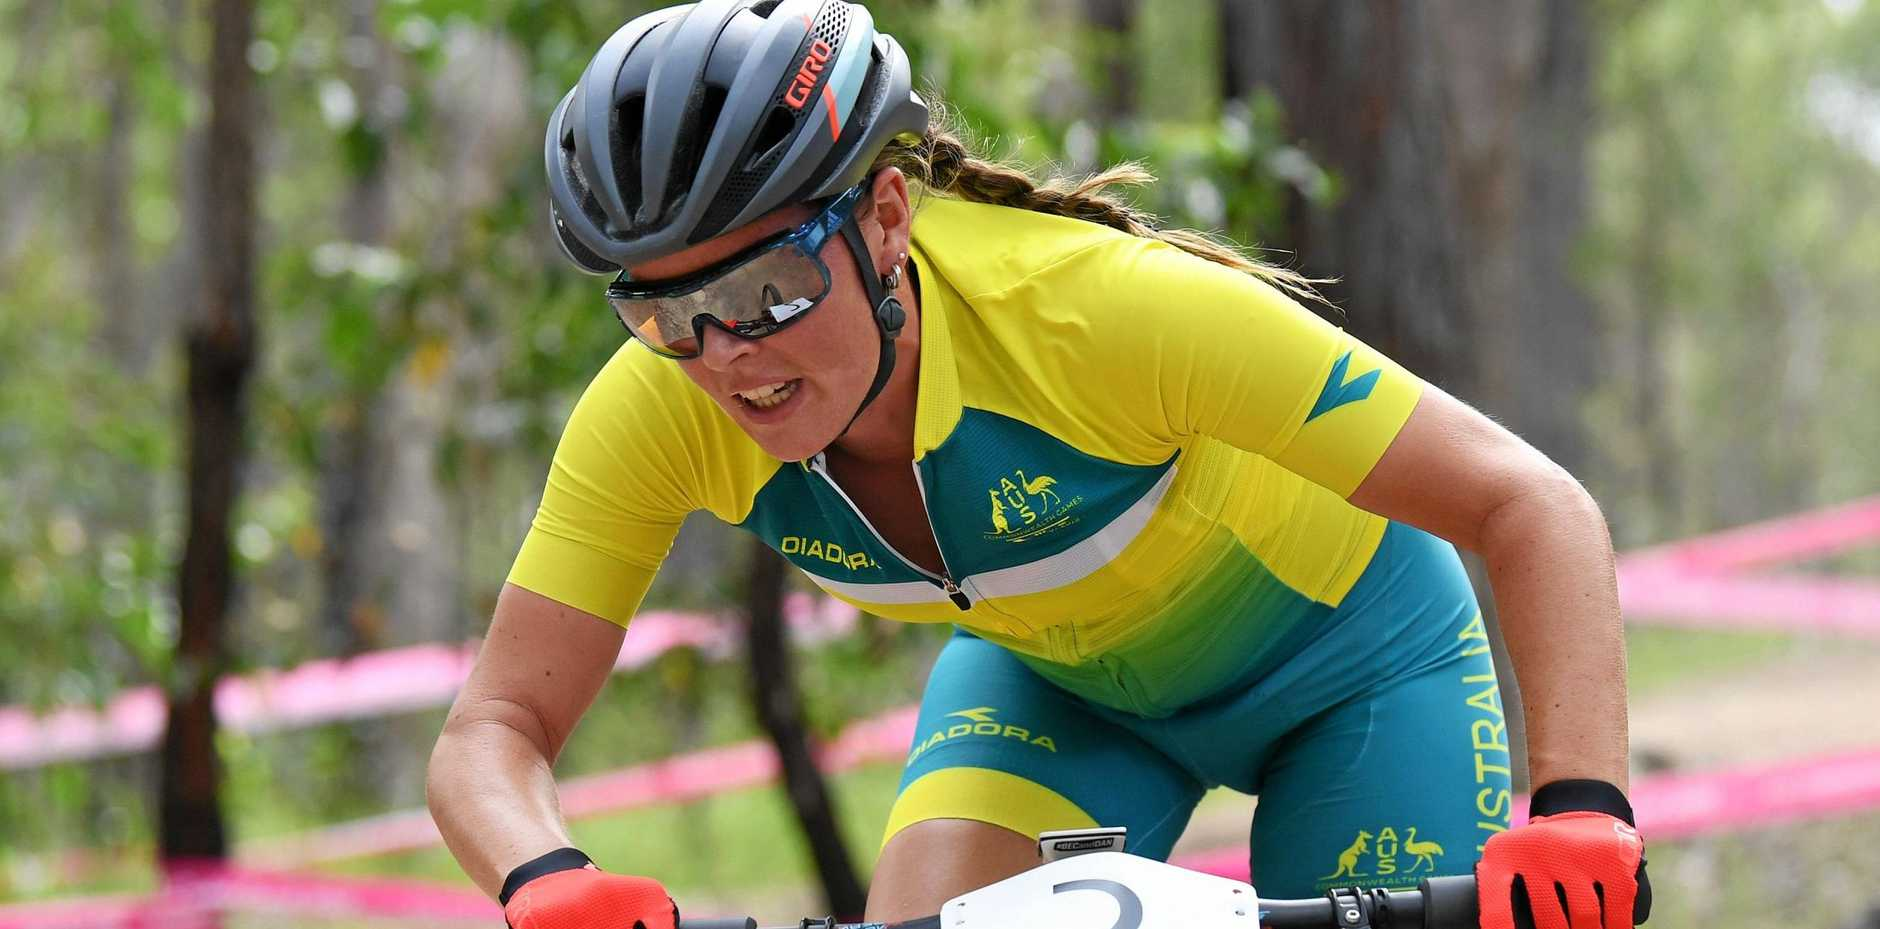 Rebecca McConnell of Australia during the Women's Cross Country Mountain Bike Final on day eight of competition of the XXI Commonwealth Games at Nerang Mountain Bike Trails, on the Gold Coast, Thursday, April 12, 2018. (AAP Image/Tracey Nearmy) NO ARCHIVING, EDITORIAL USE ONLY